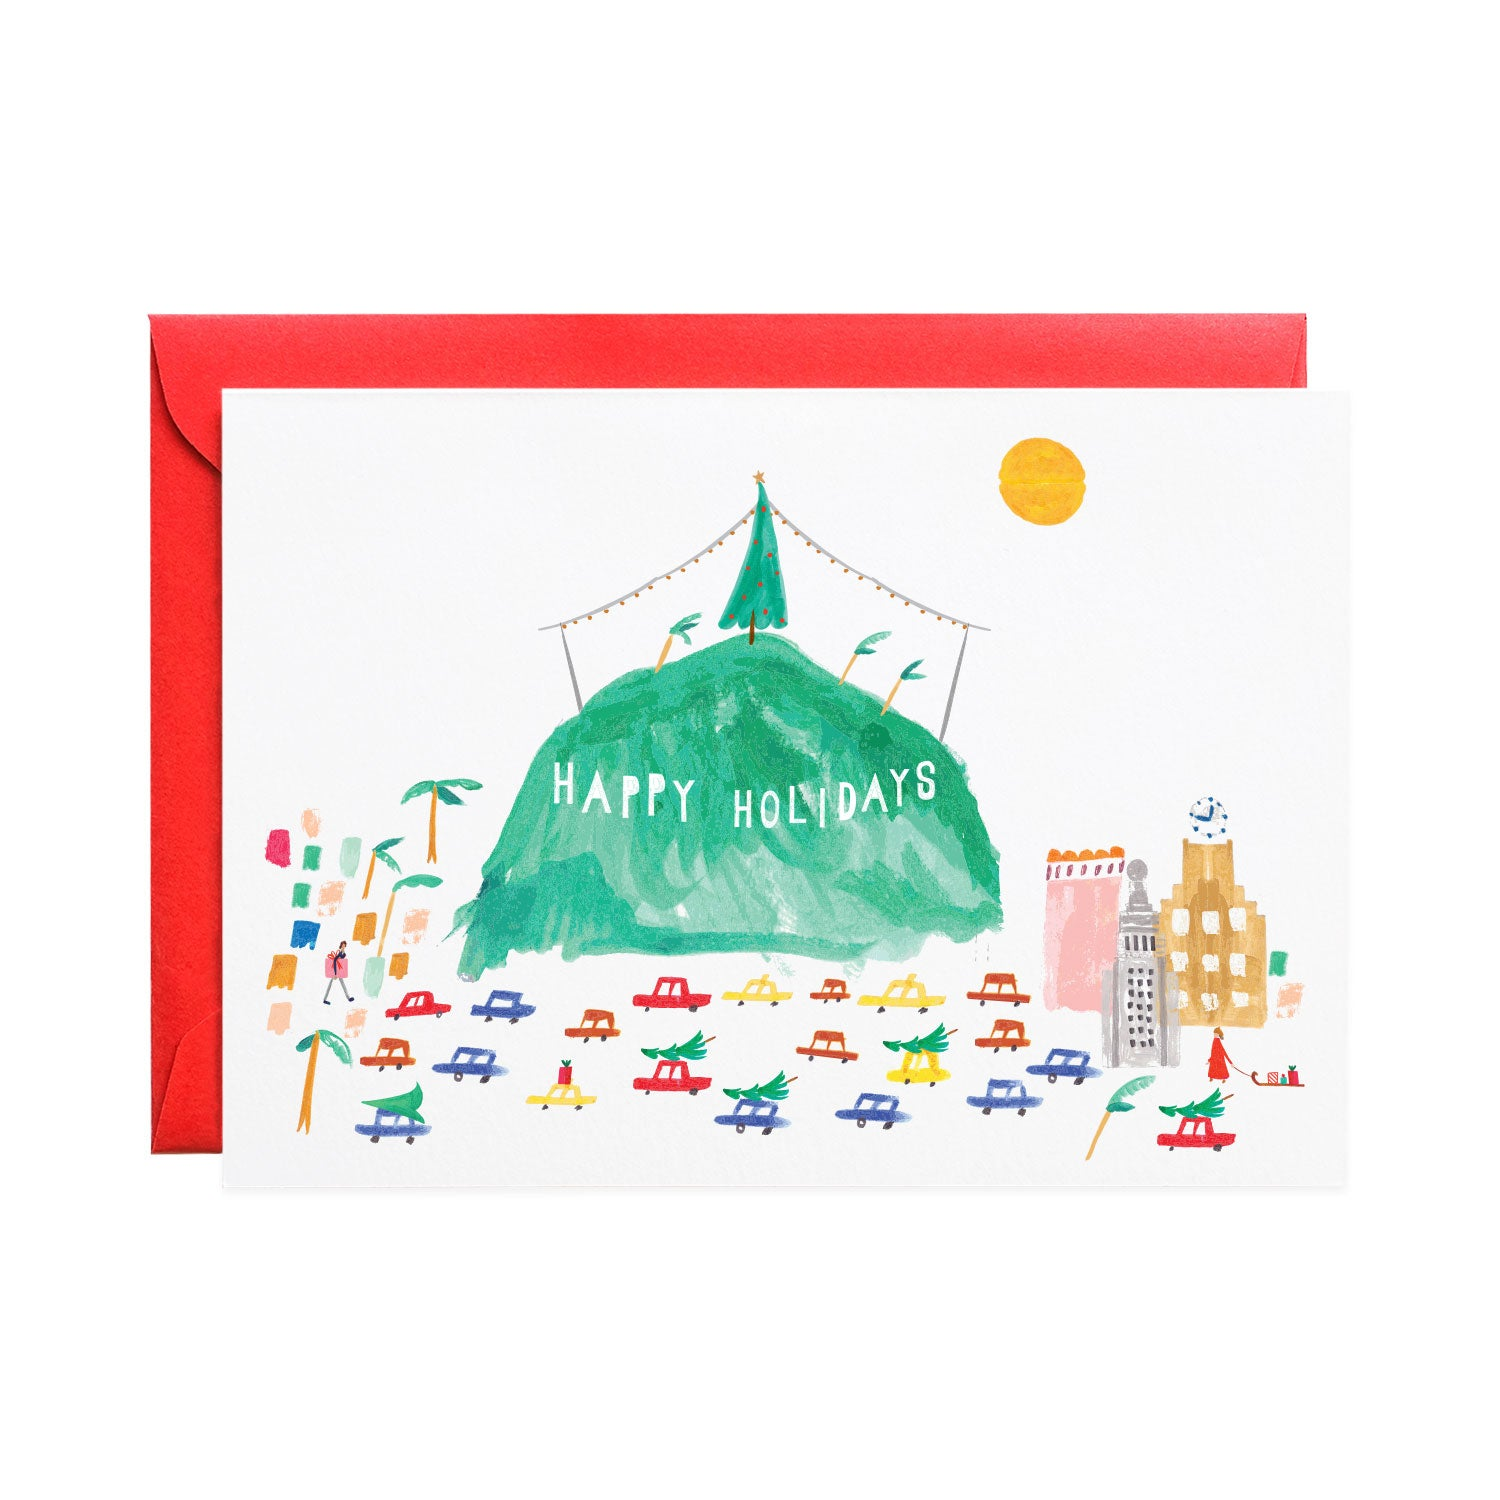 HOLLYWOOD HOLIDAYS - HOLIDAY CARD